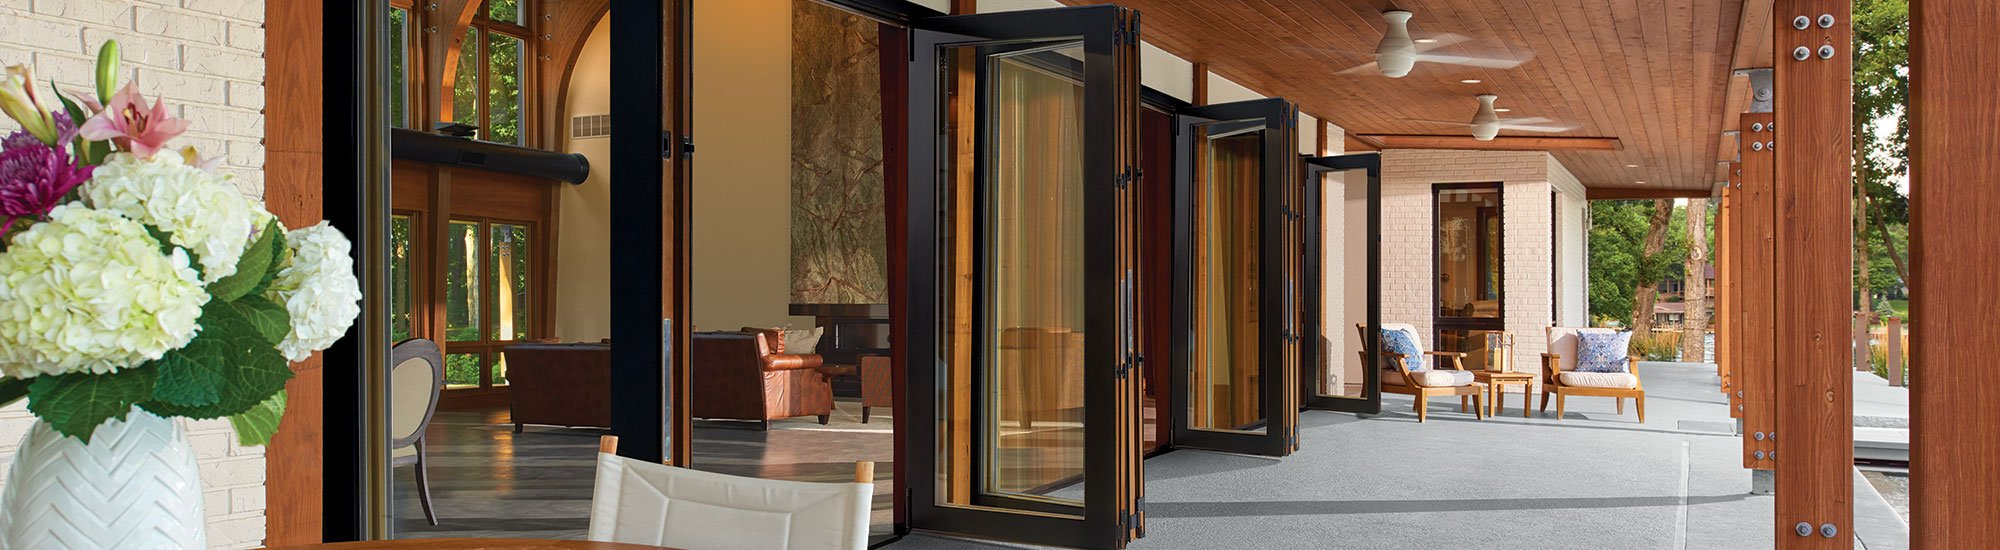 Marvin Bifold Doors